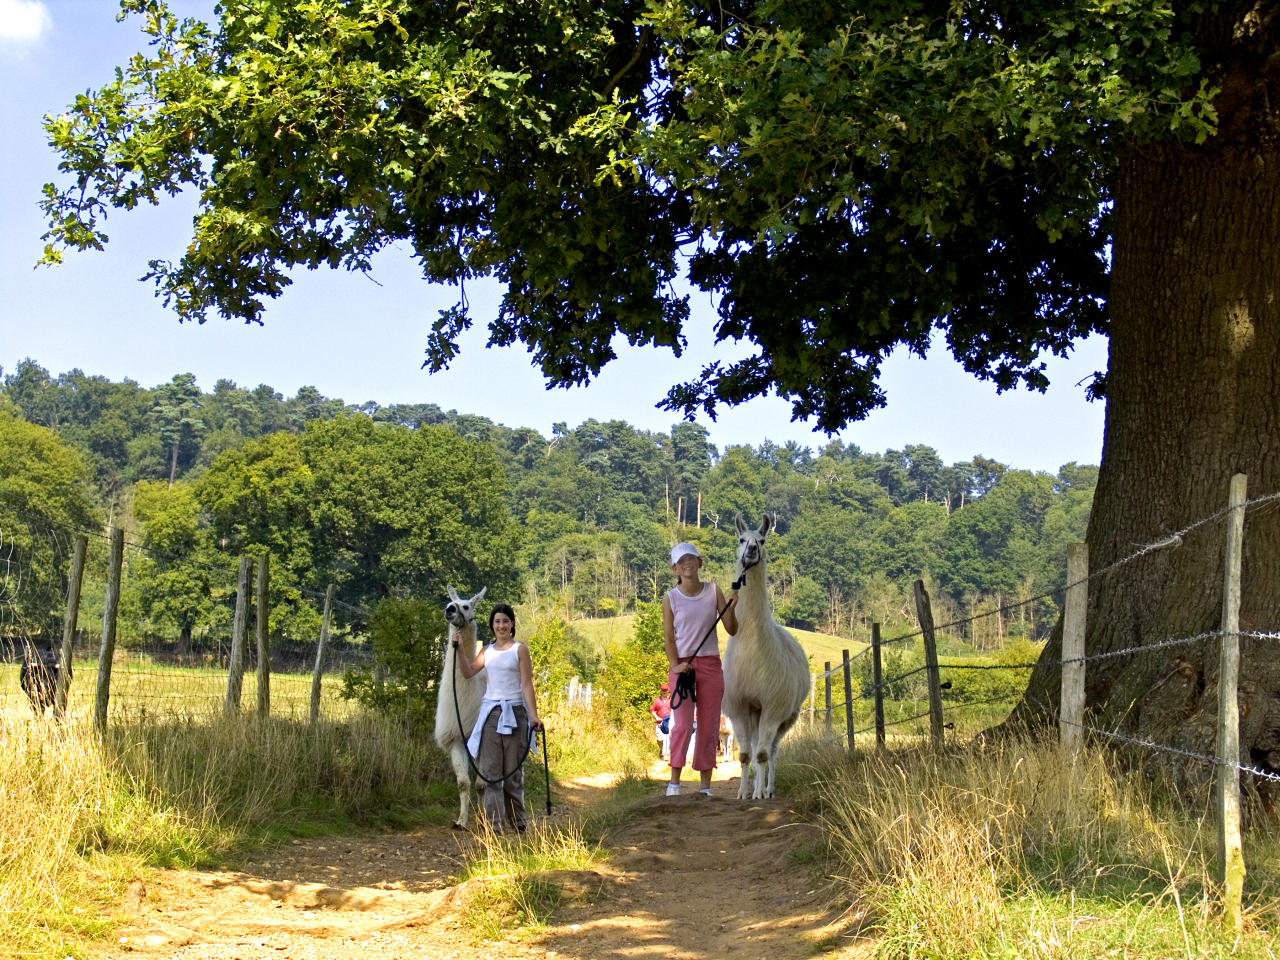 "<p>You don't have to go to South America to meet a llama – the <u><a rel=""nofollow"" href=""http://www.merryharriers.com/"">Merry Harriers</a></u> pub in Hambledon offers llama trekking for a quintessential English break with a difference. Stay on one of the new shepherds huts before heading outside for full immersion in nature. Guides will take you (and your llama) for a walk, ranging from a half-hour stroll to a half-day trip with a picnic included. The llama walks are also suitable for children aged eight and over and cost from £55.20 per adult, £27.60 per child (eight-13). Shepherds Huts cost from £195 per night B&B.<em>[Photo: <u>Getty]</u></em> </p>"